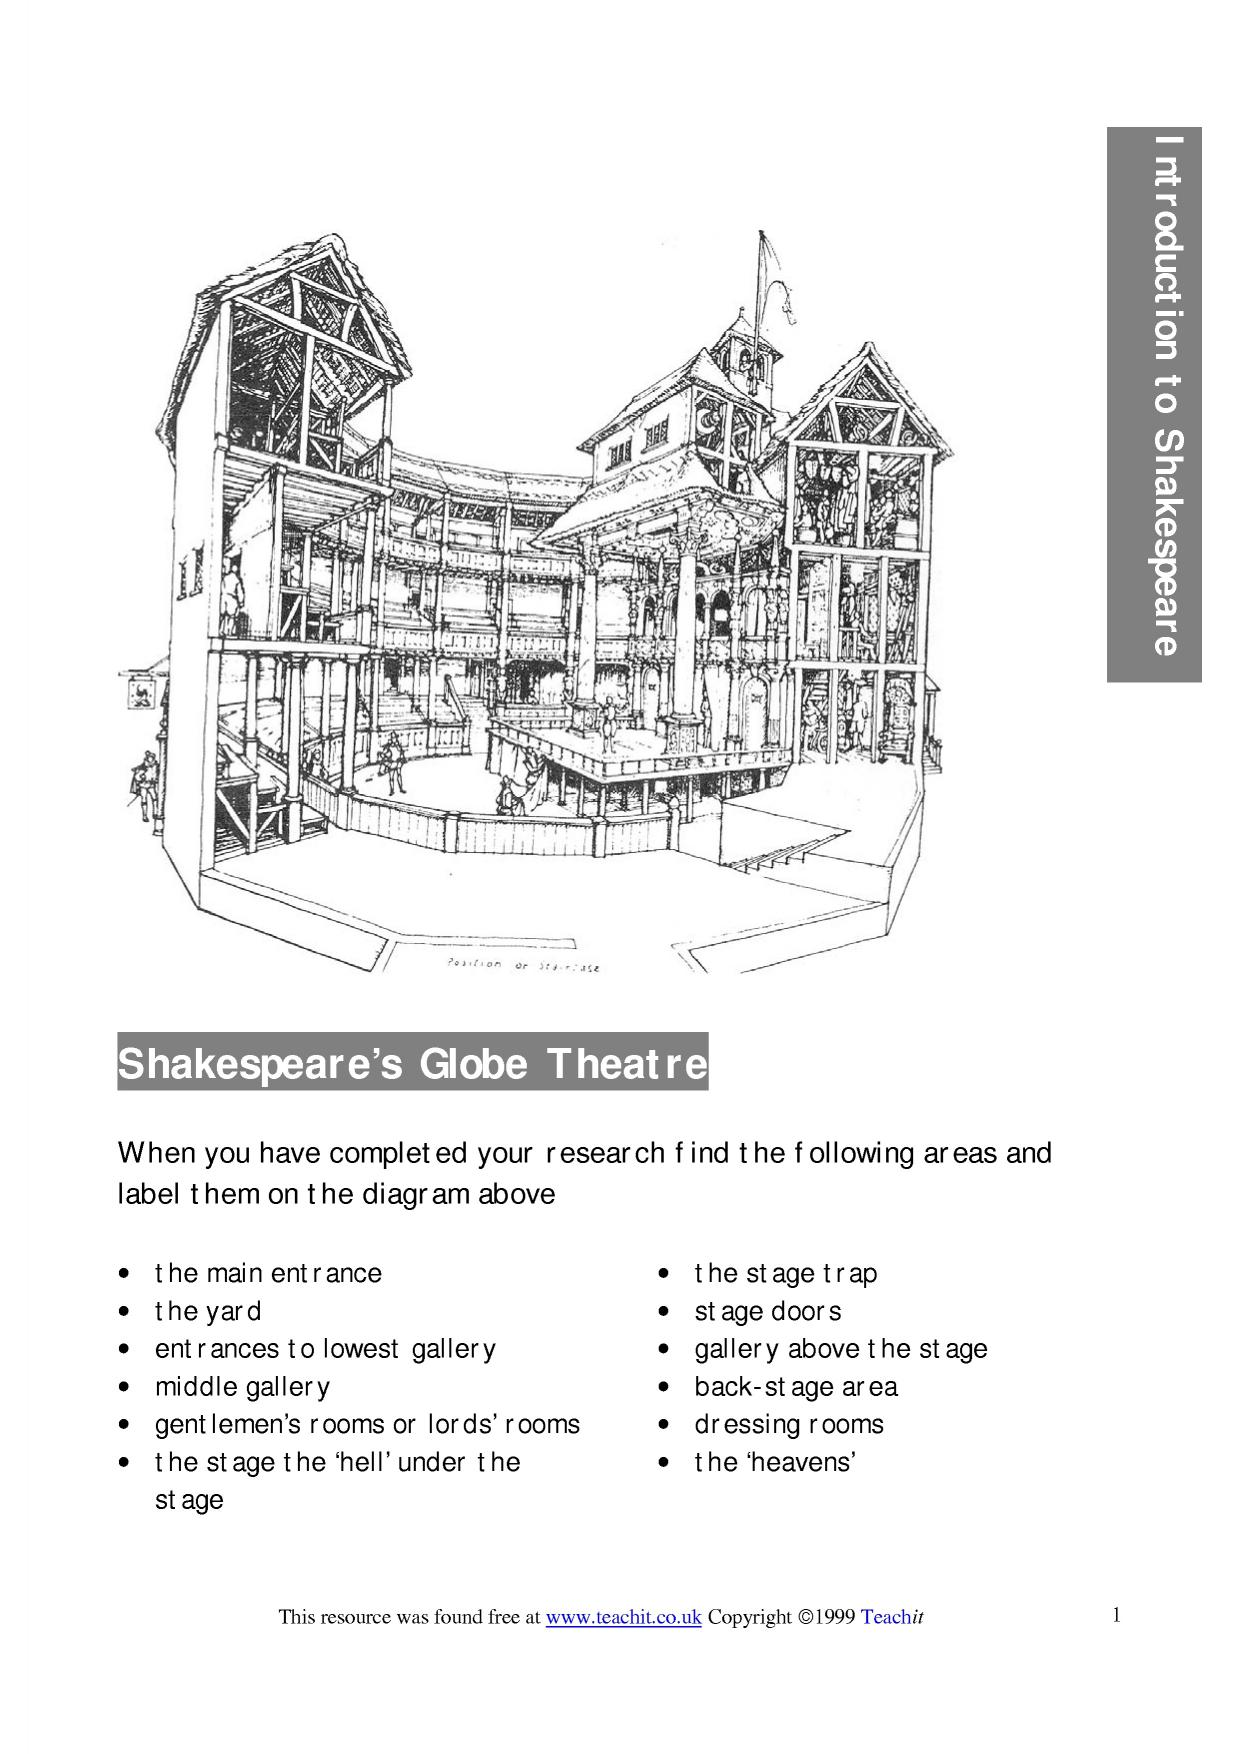 469.php research the globe theatre